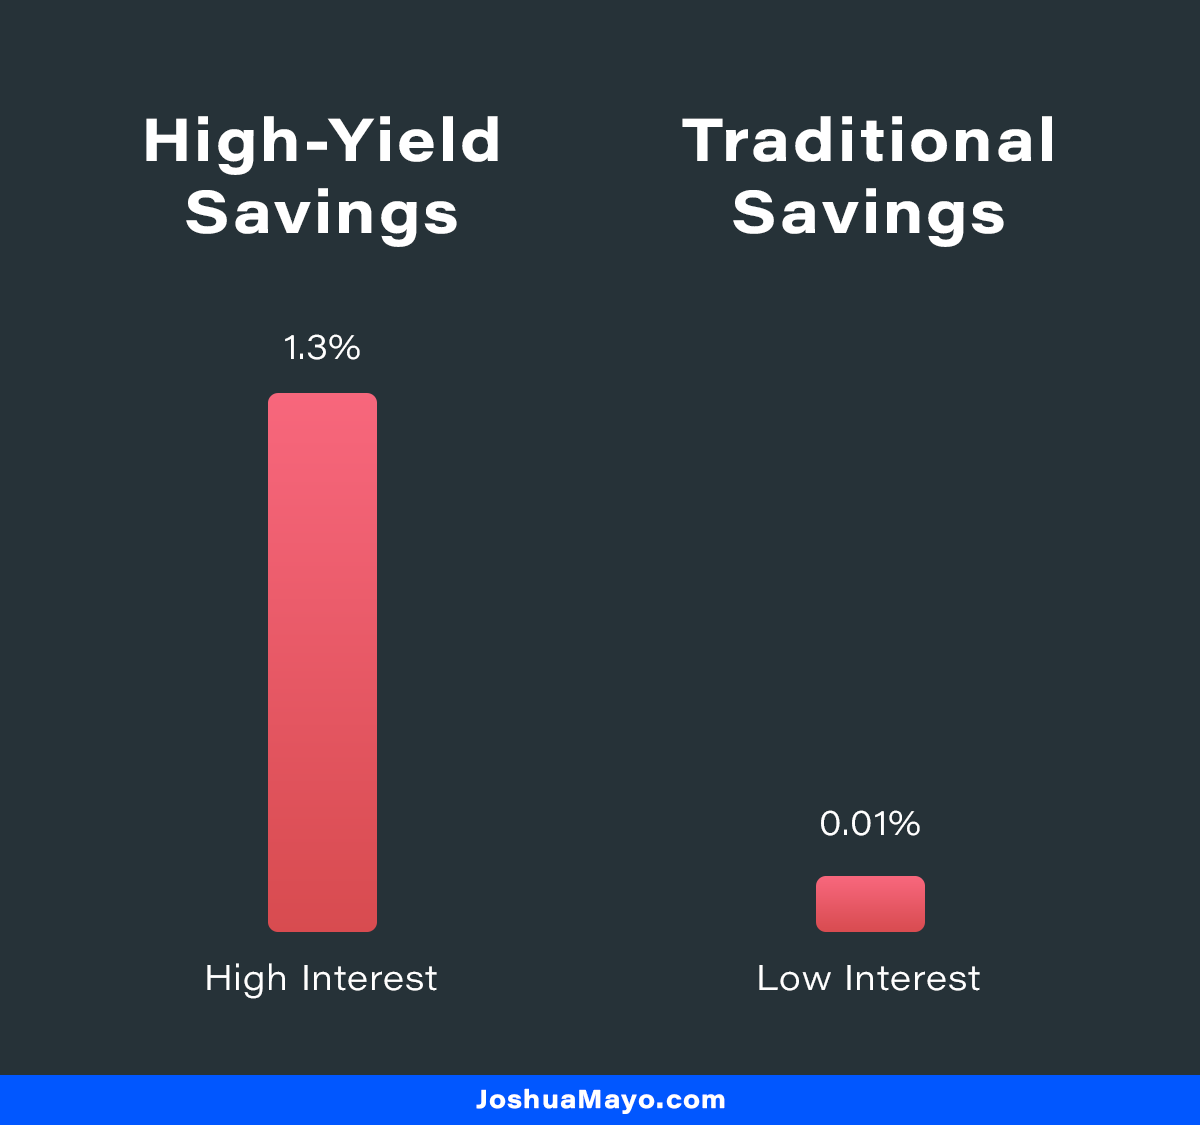 high-yield savings account with high interest vs traditional savings account with low interest